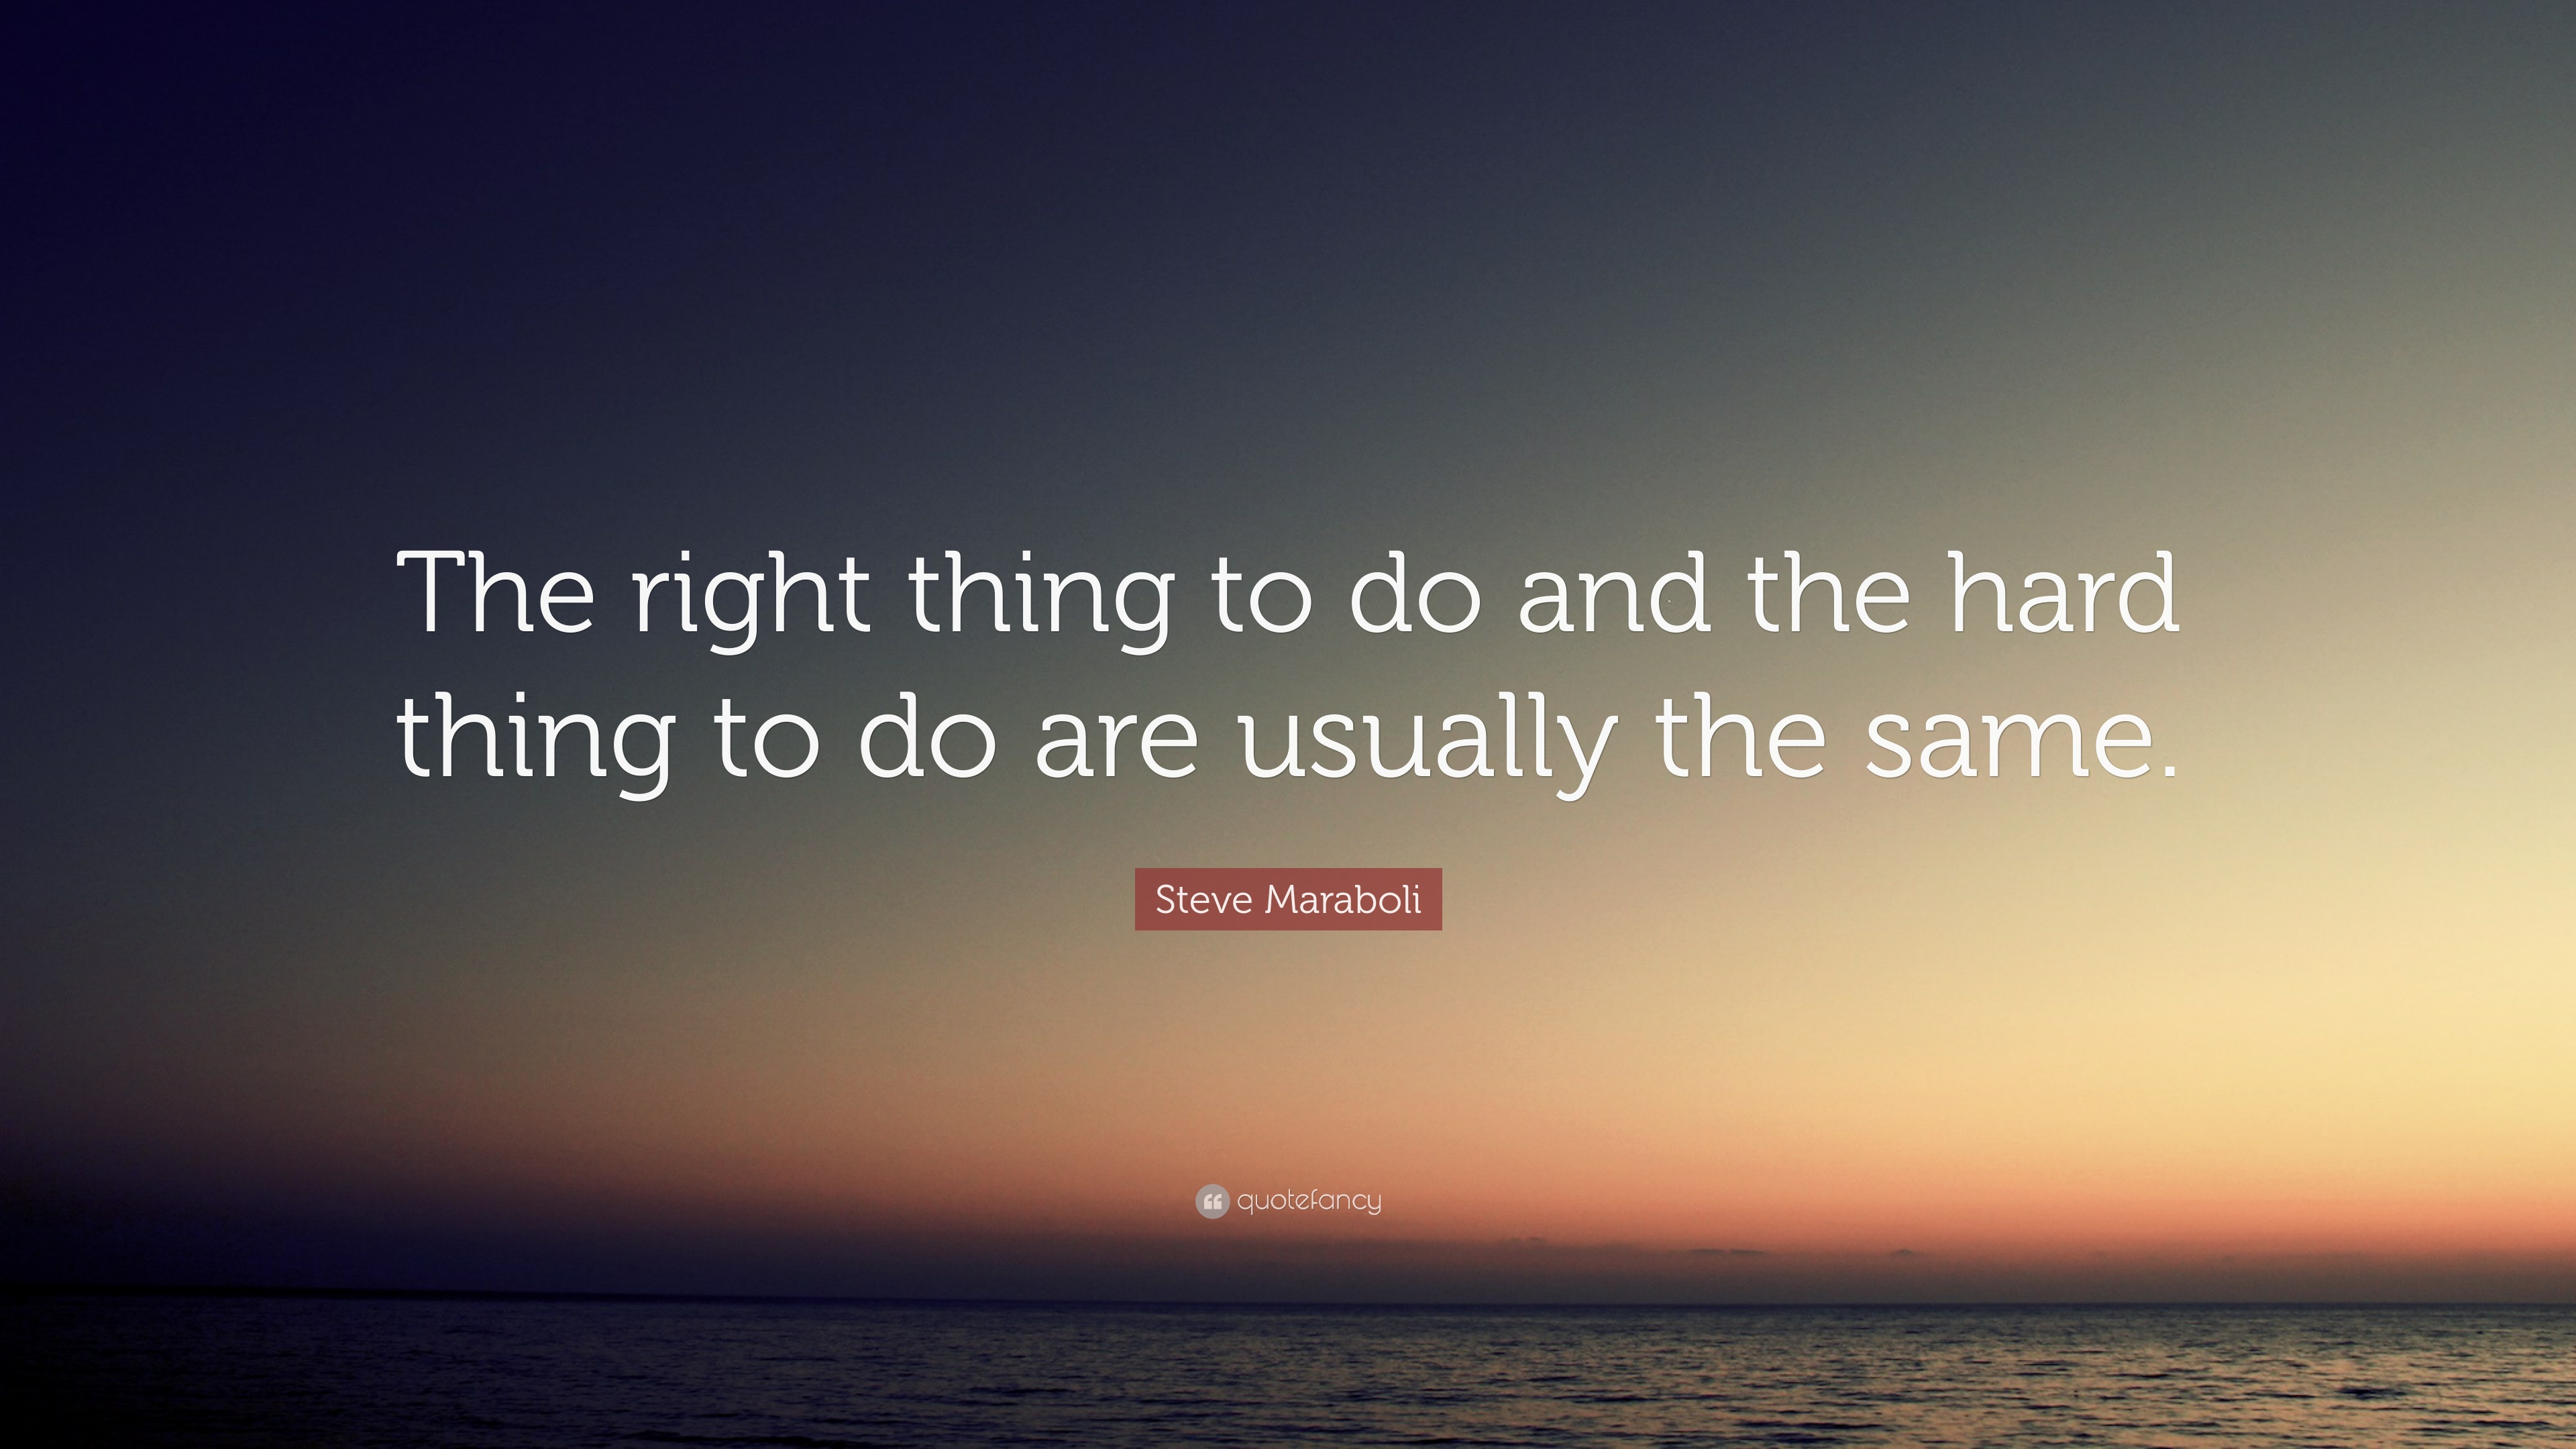 Steve Maraboli Quote The Right Thing To Do And The Hard Thing To